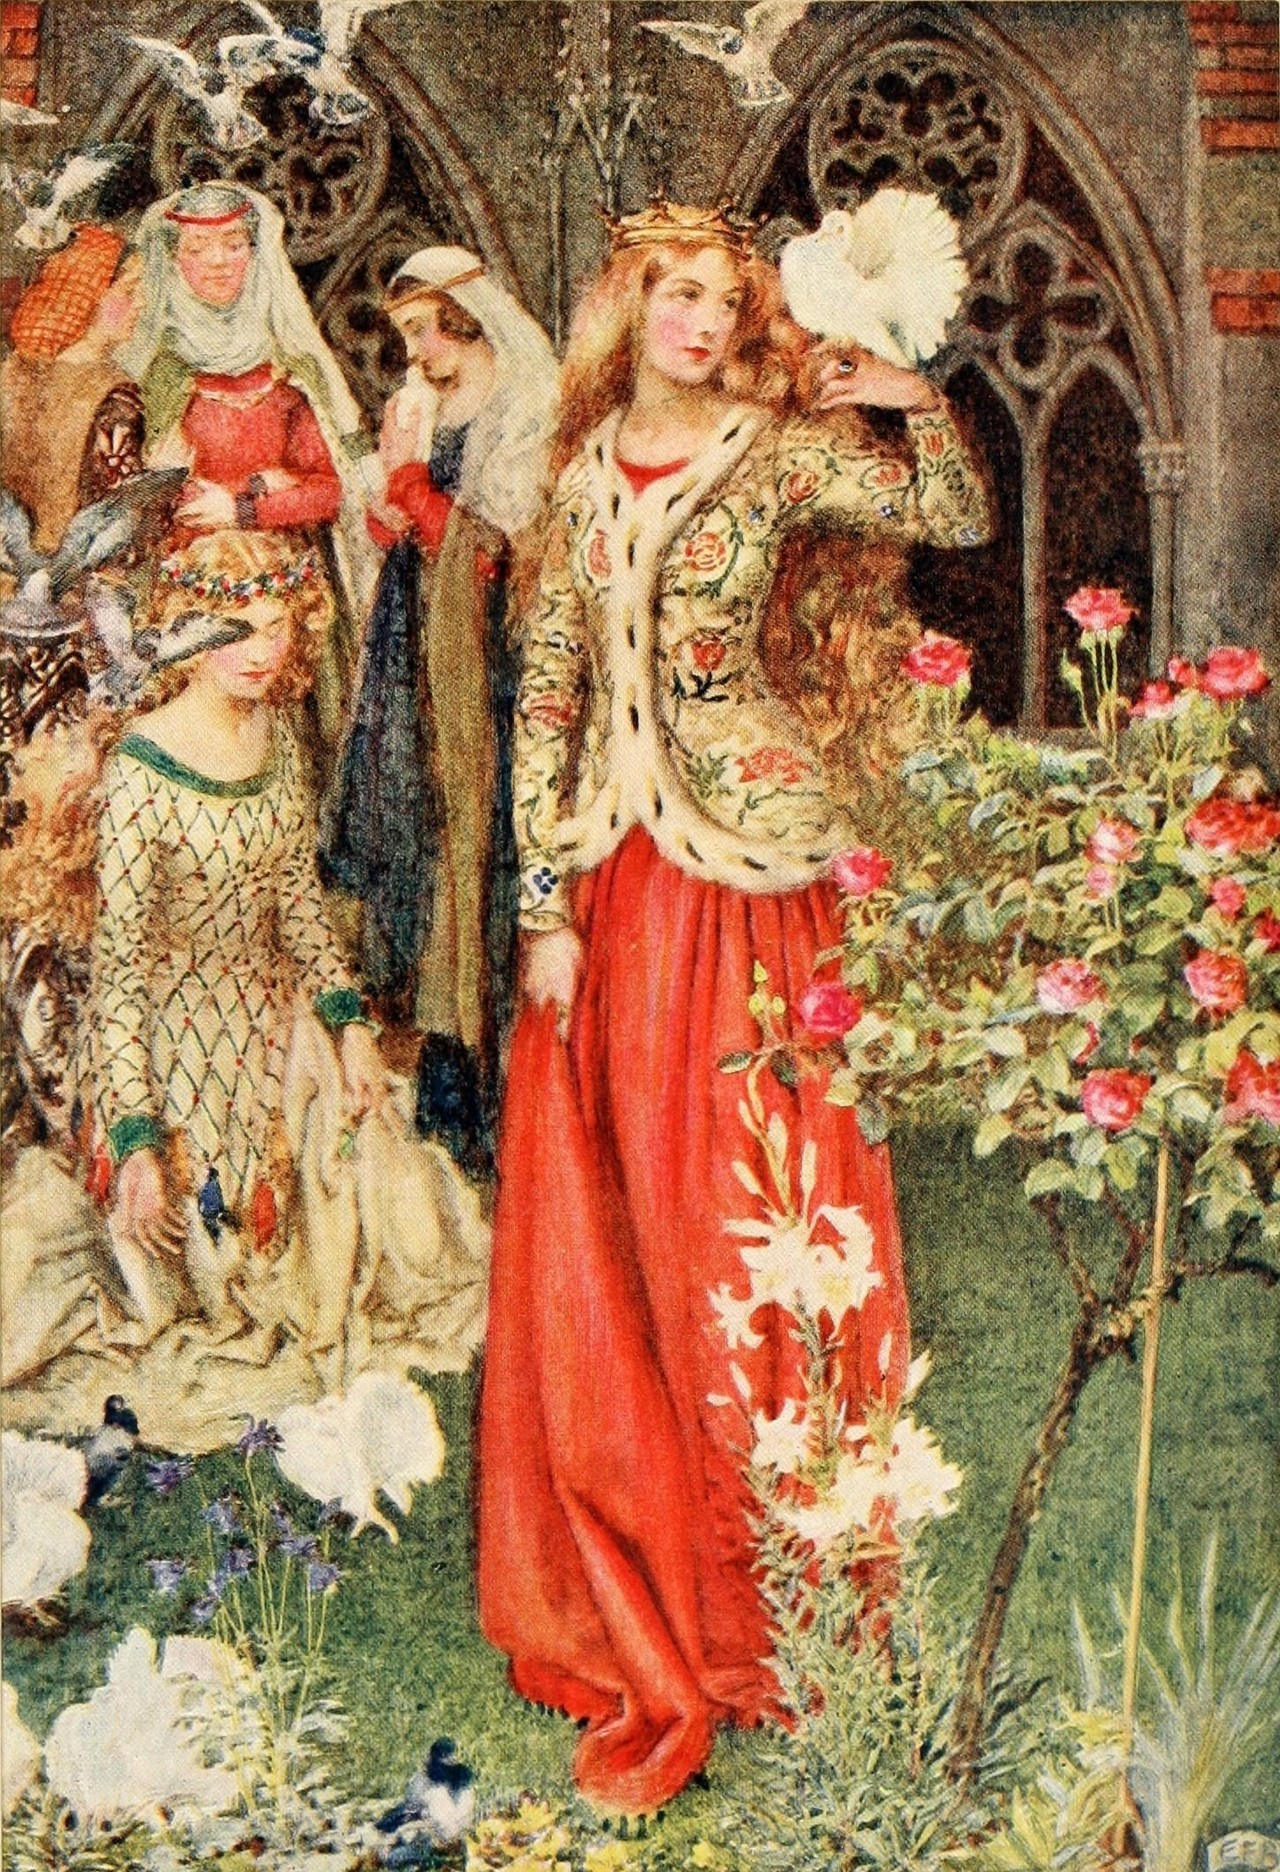 Eleanor Fortescue-Brickdale ~ Guinevere ~ Idylls of the King by Alfred Lord Tennyson ~ 1913 ~ via Illustration for Guinevere As in the golden days.